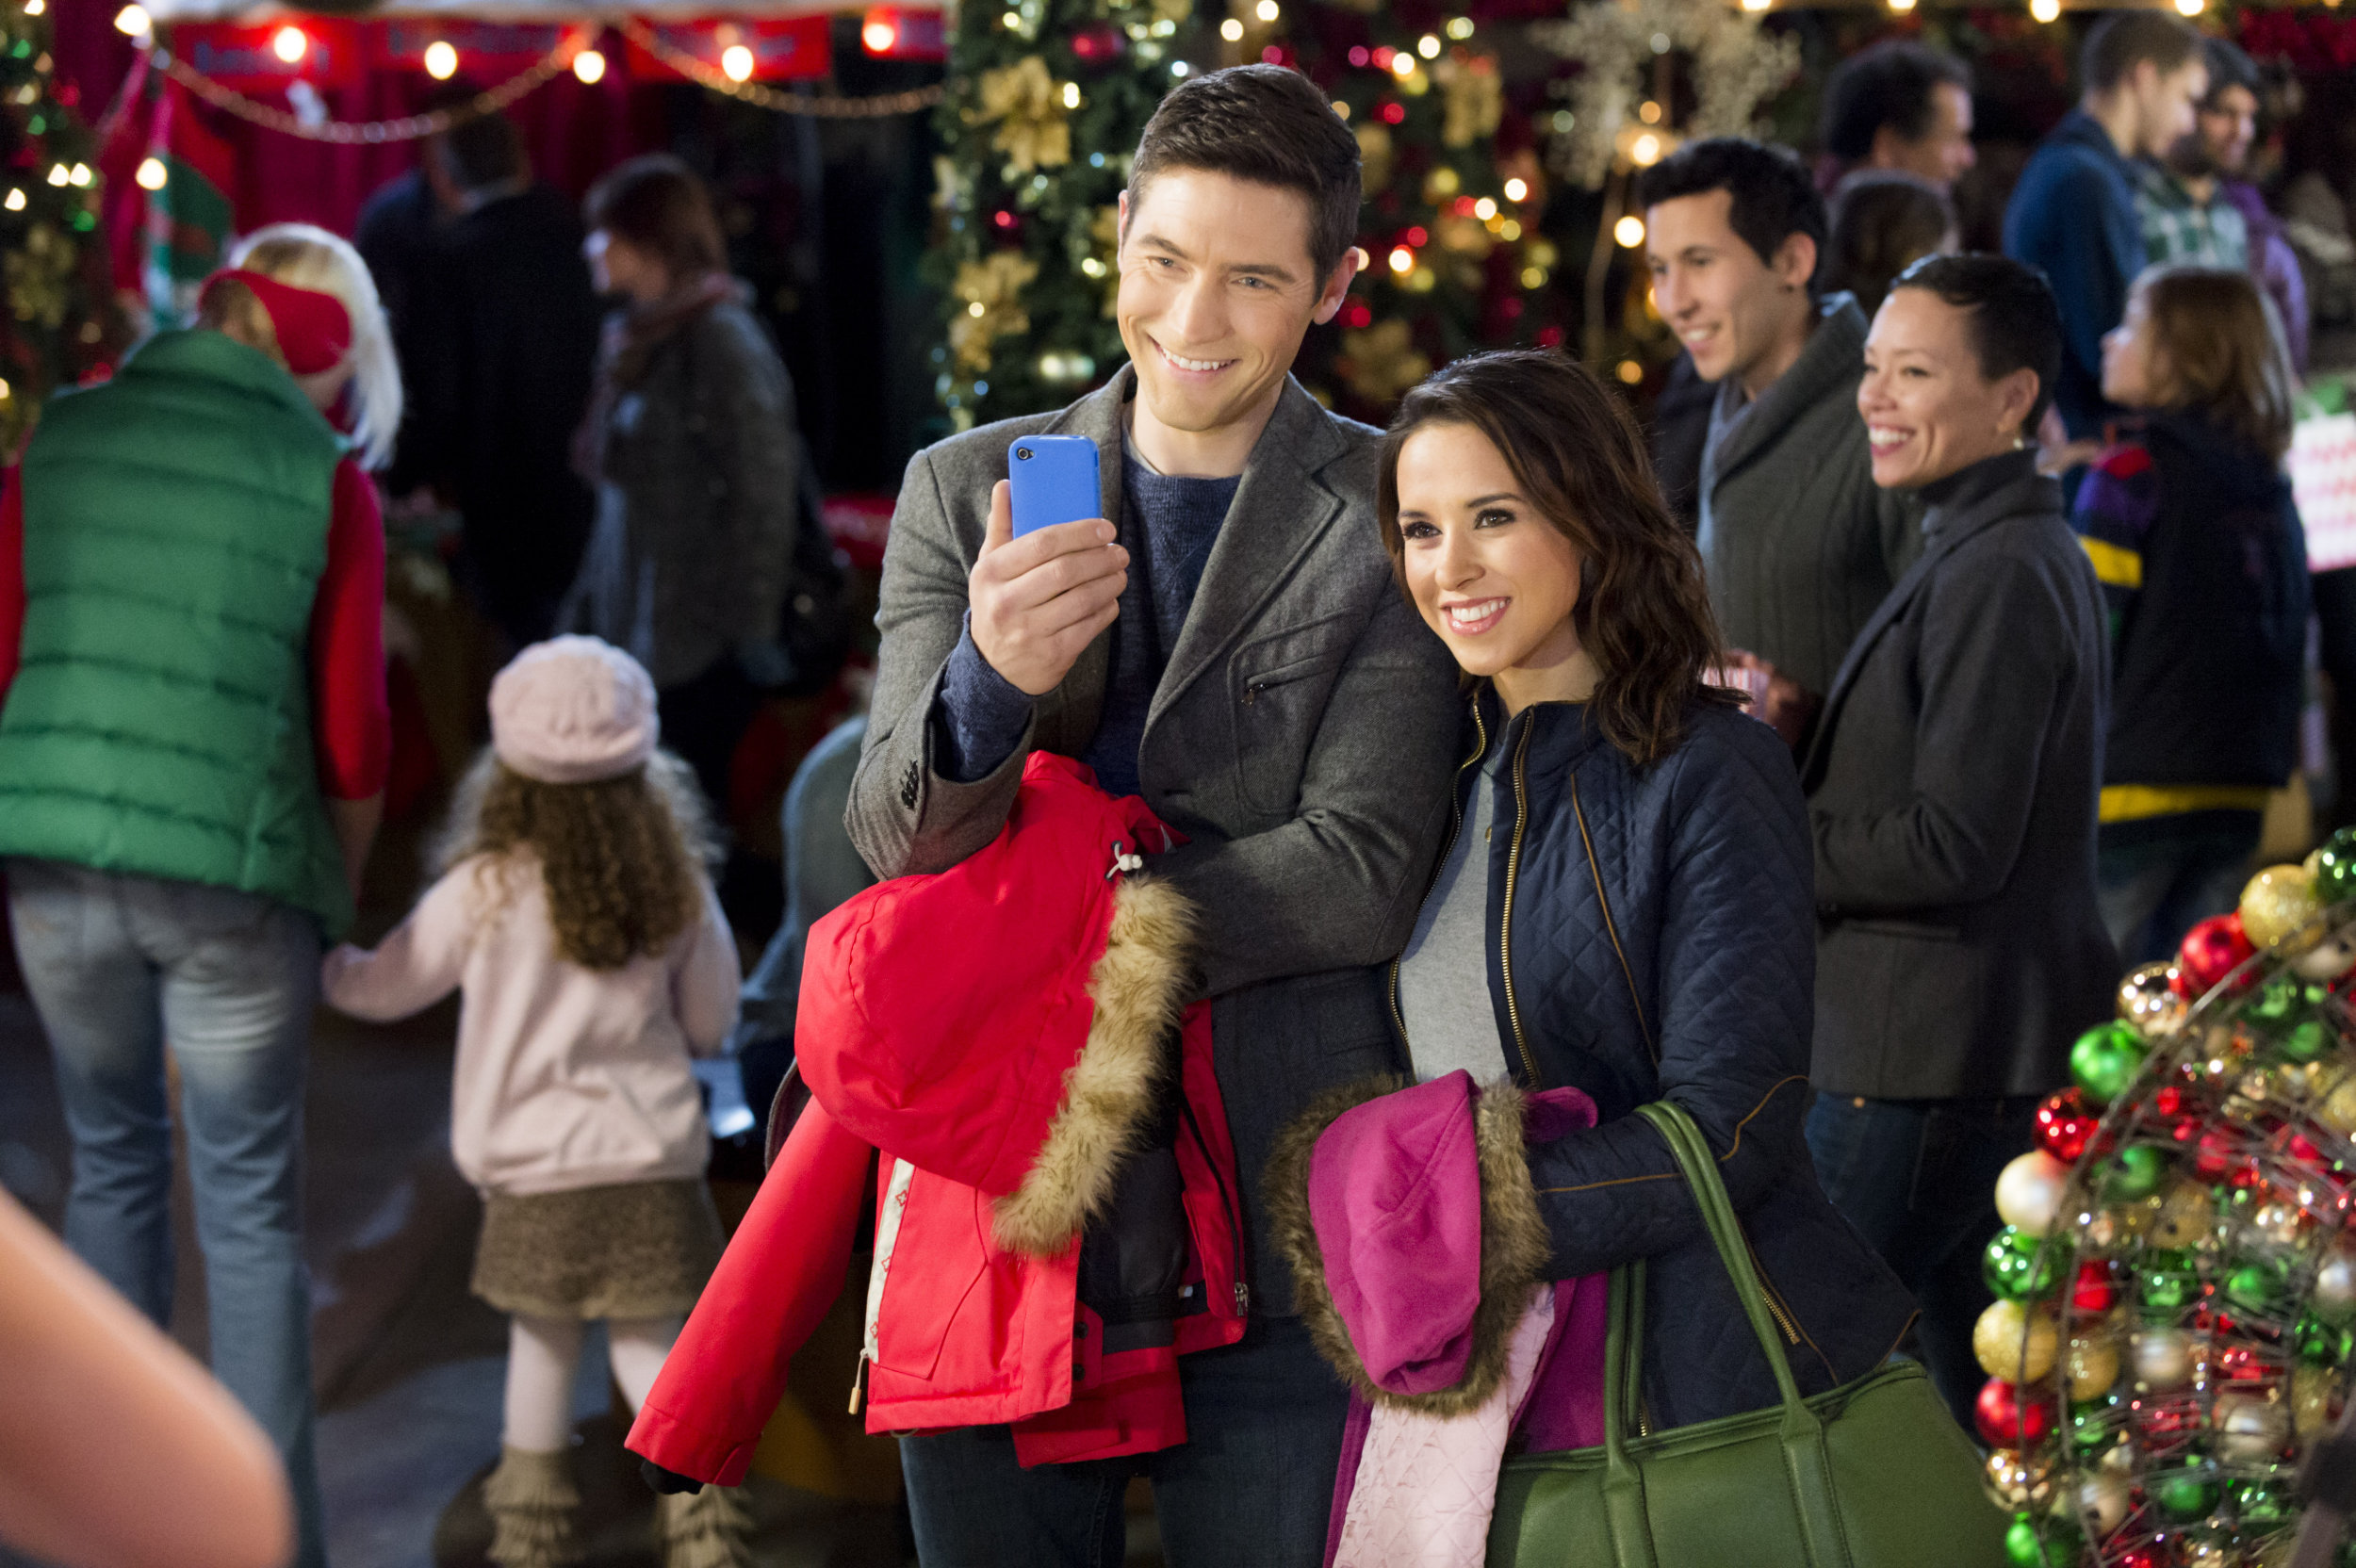 Christmas card hallmark channel movie – Christmas shopping Site